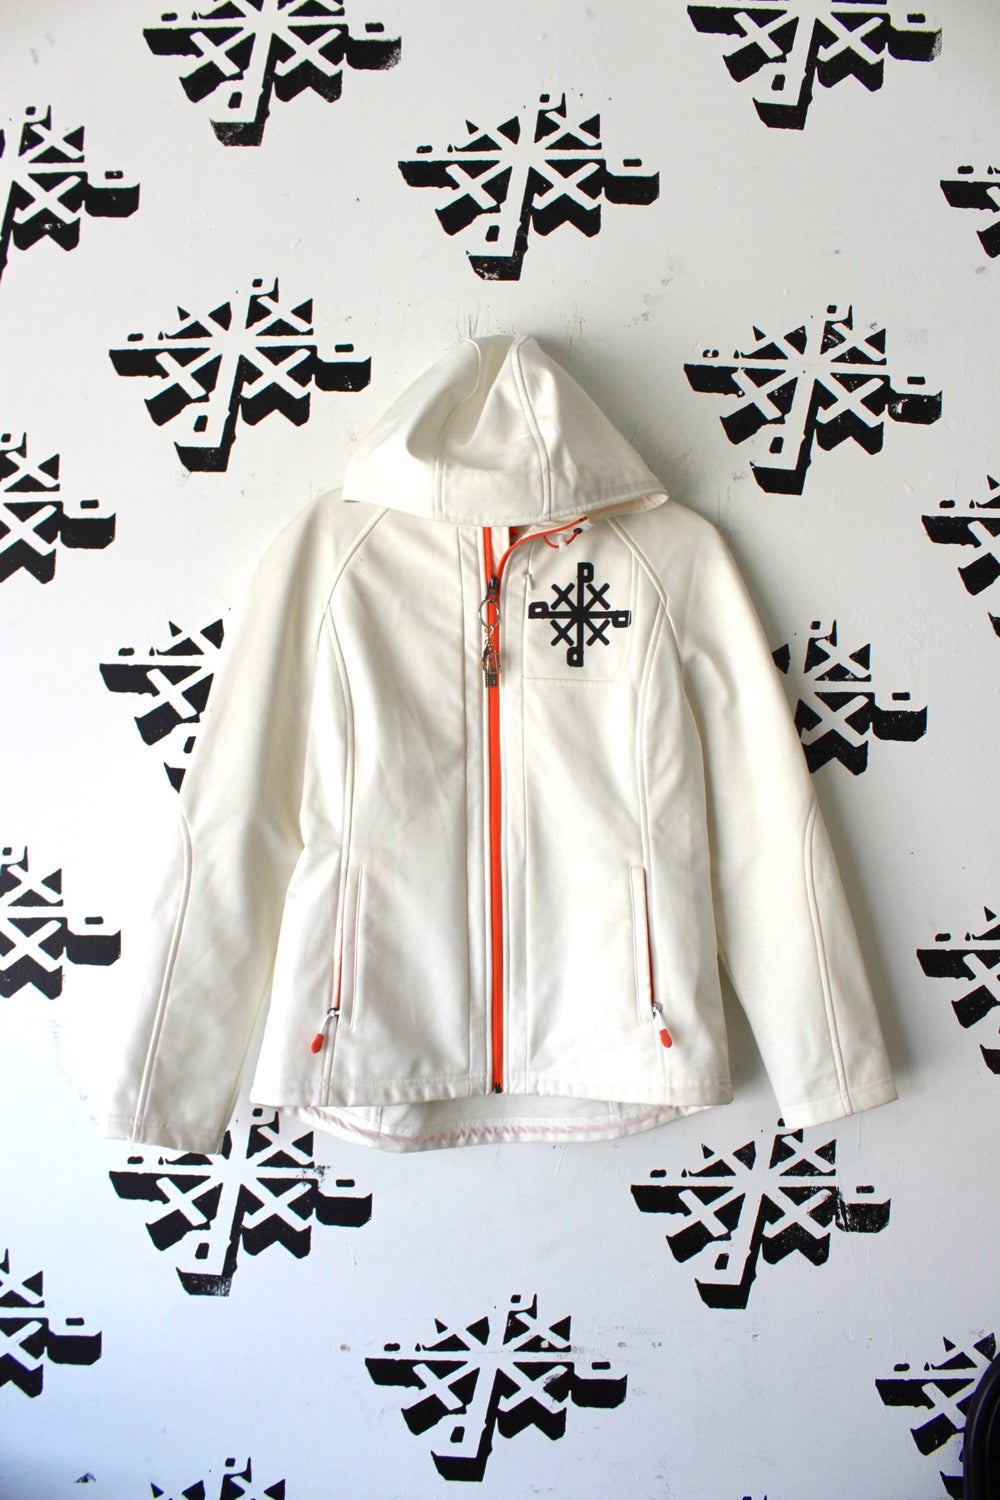 reparation$ jacket in white